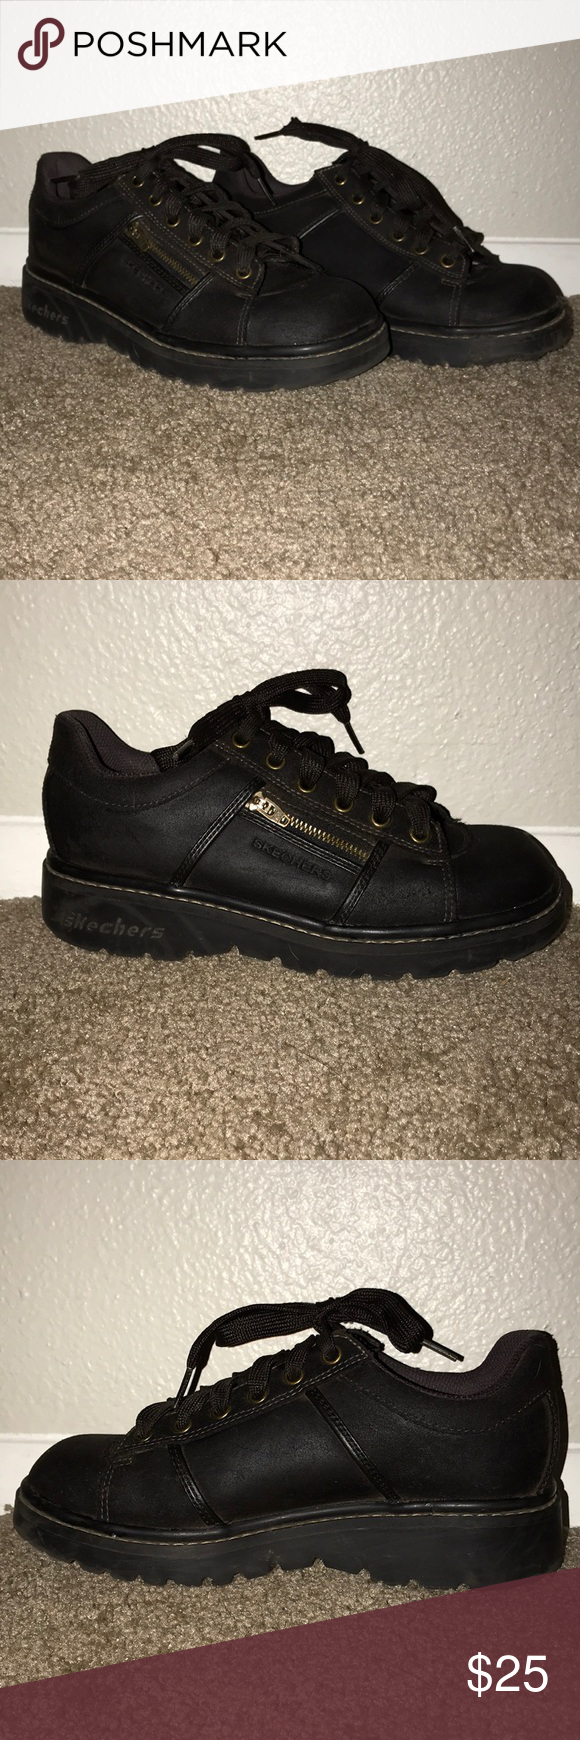 Vintage Skechers Brown Leather Shoes